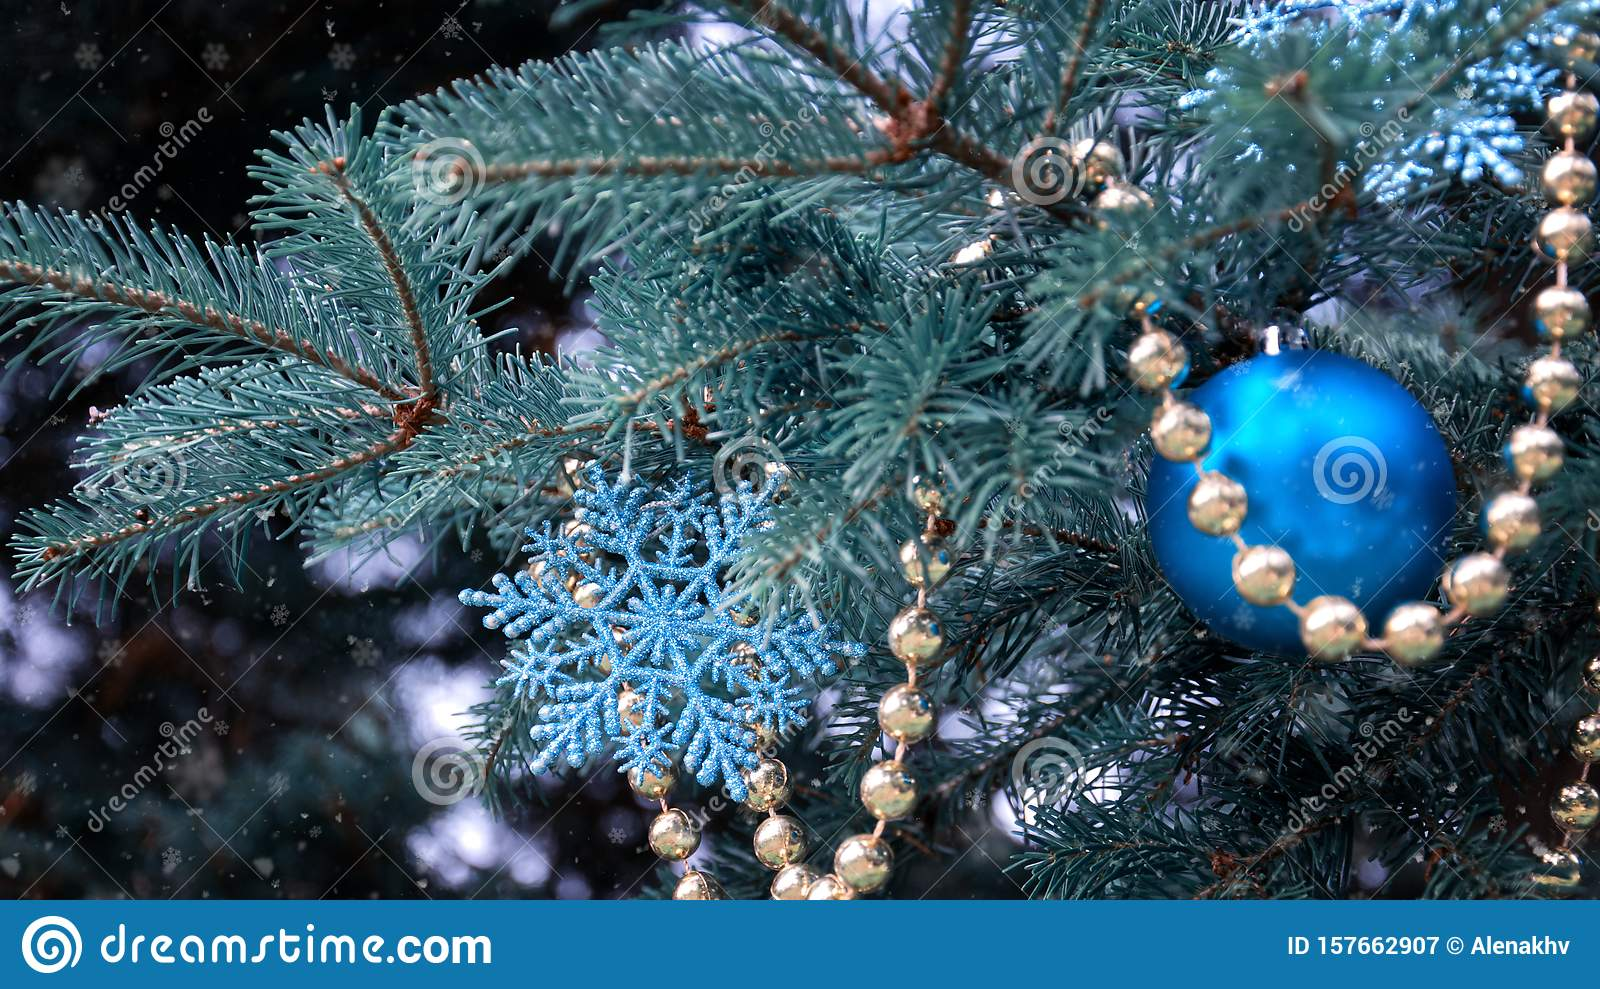 Close Up Of A Christmas Tree With Rose Gold And Turquoise Decorations Balls Snowflakes Bows Beads On A Blurry Background Stock Image Image Of Christmas Bows 157662907